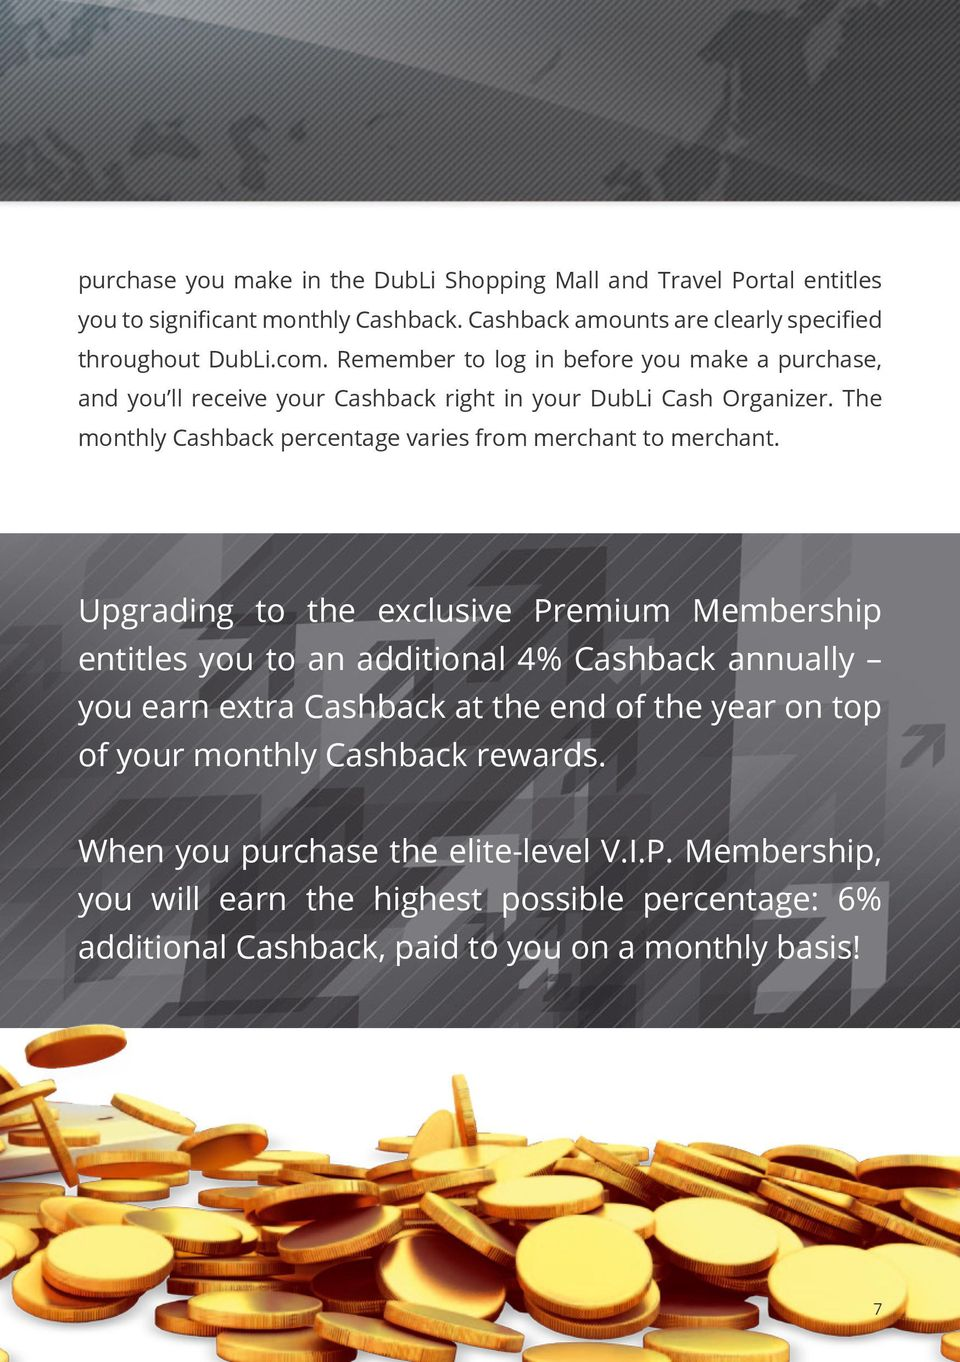 The monthly Cashback percentage varies from merchant to merchant.